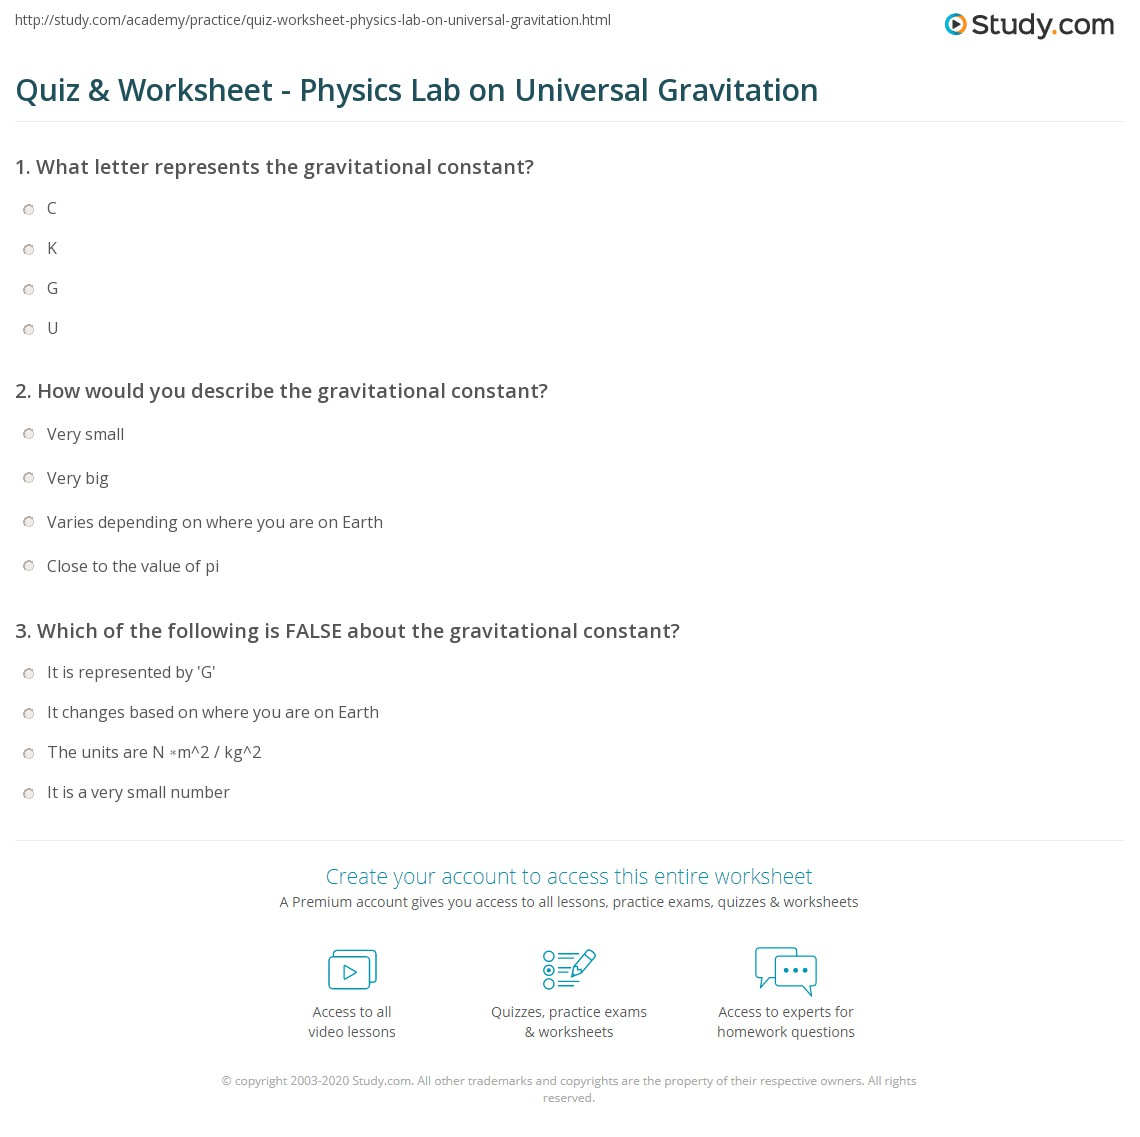 Quiz & Worksheet - Physics Lab on Universal Gravitation | Study.com